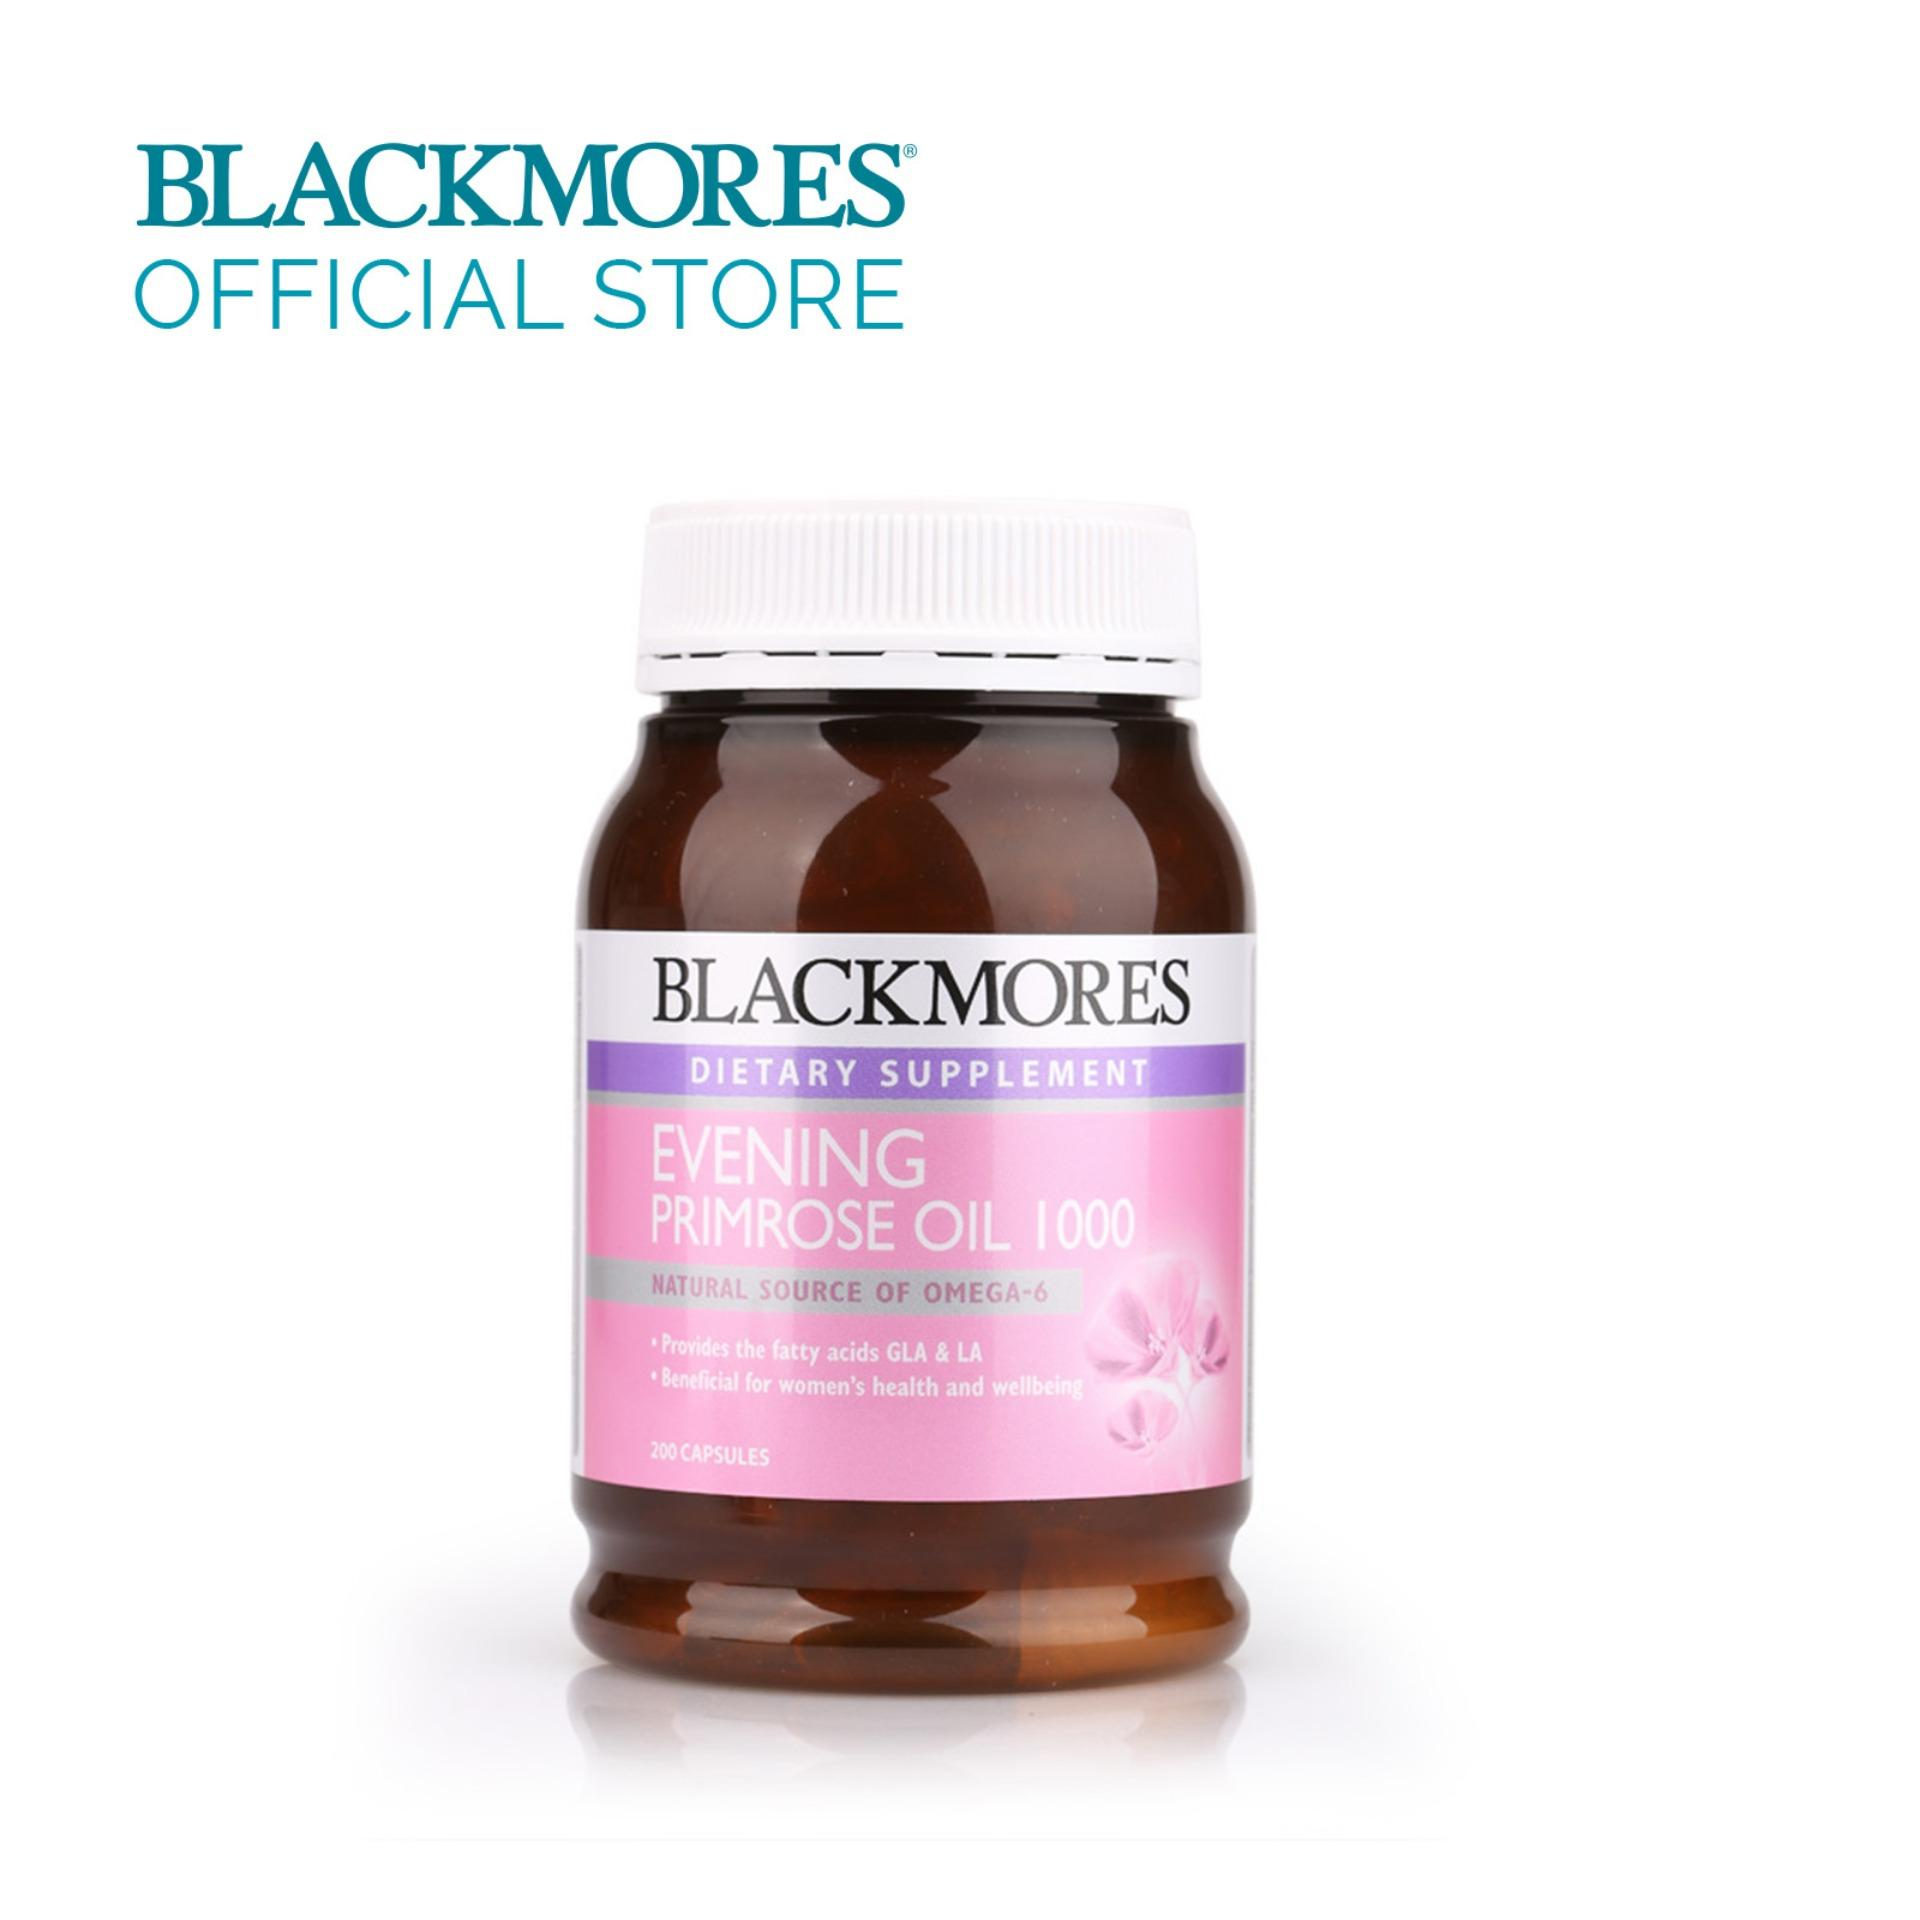 Blackmores Evening Primrose Oil 1000mg 200caps By Blackmores Official Store.